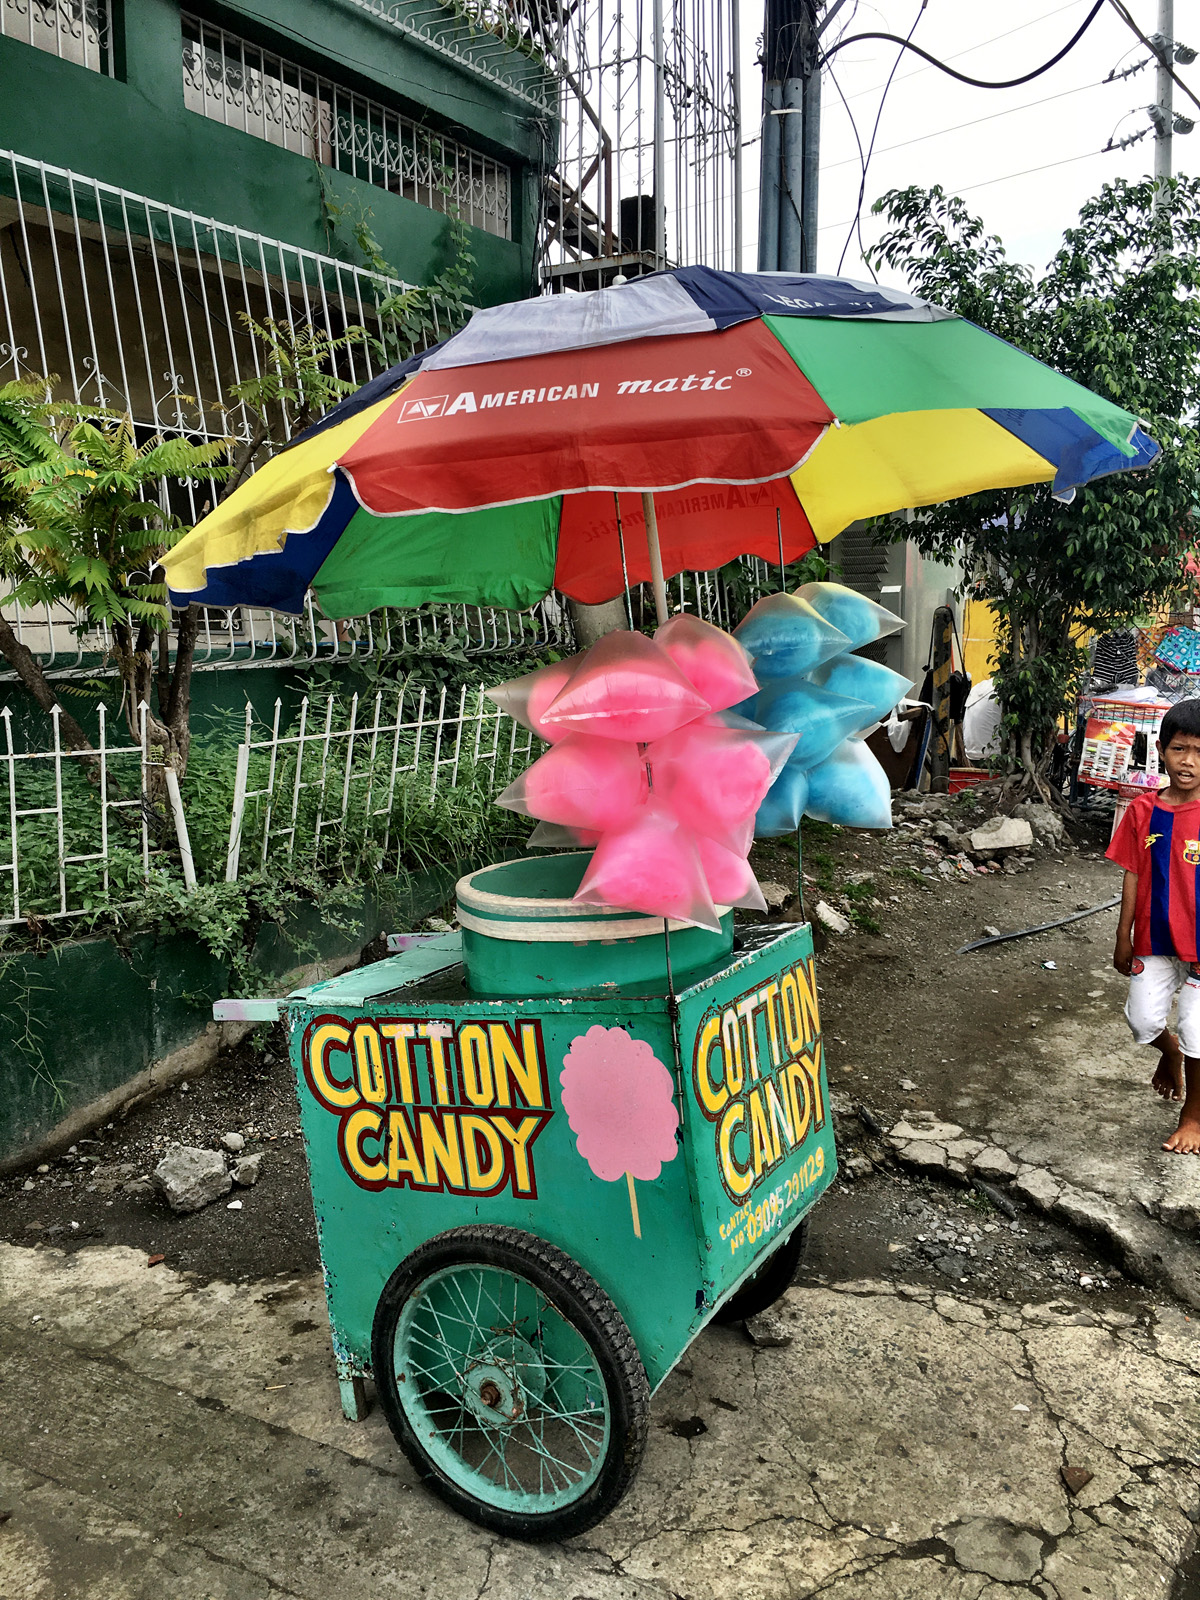 Cotton candy vendor on the side of the road.